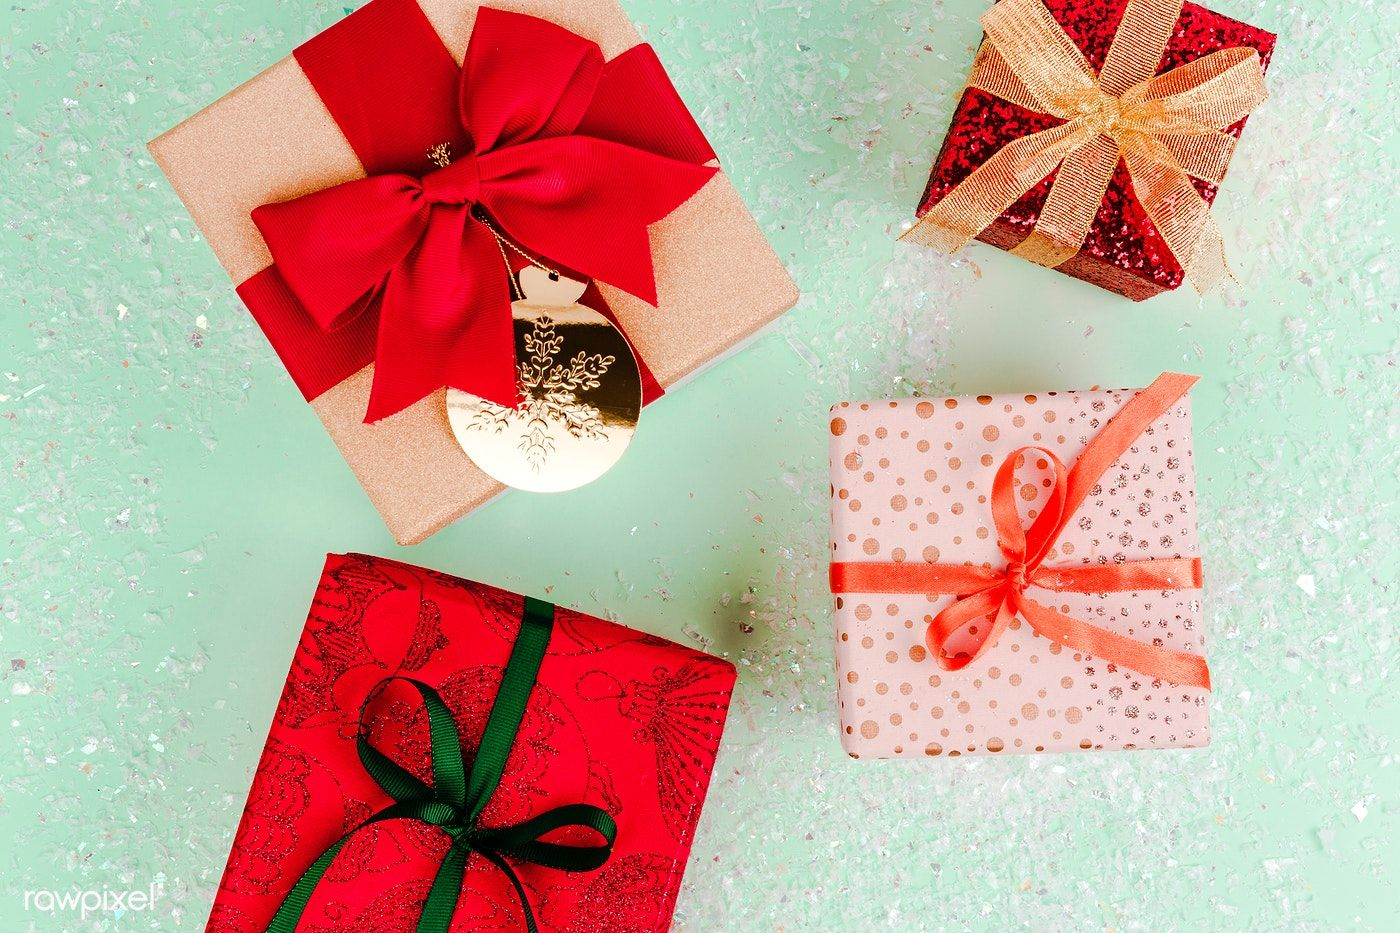 Download premium photo of Christmas gift boxes aerial view.